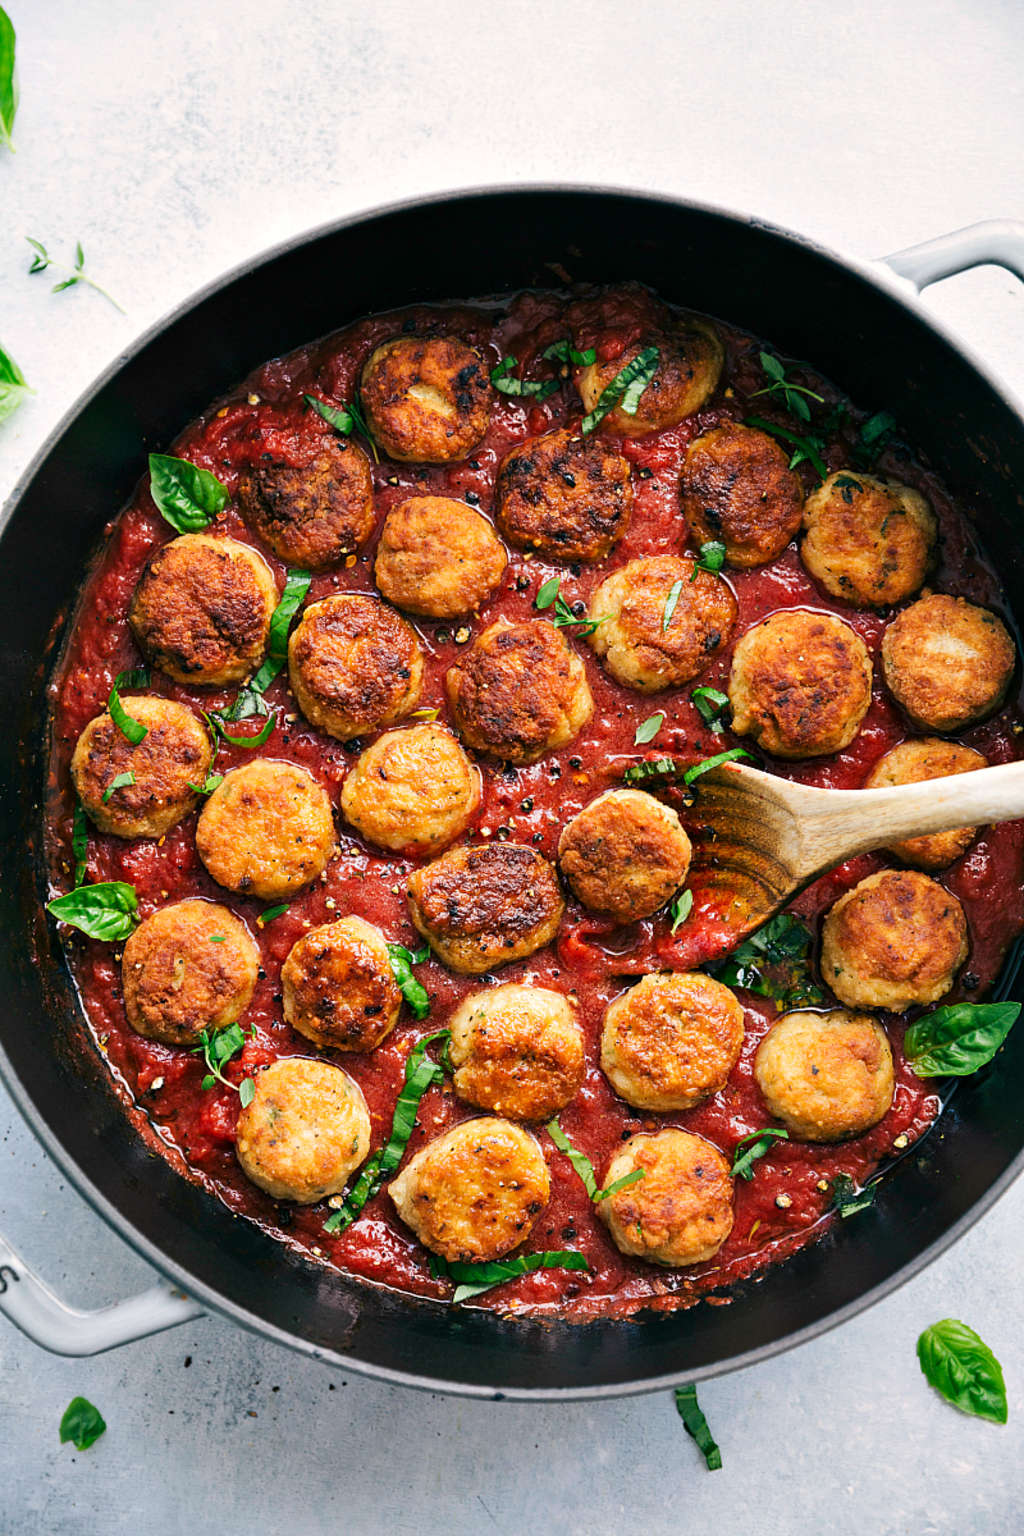 These Mini Chicken Parm Meatballs Are Cute and Delicious